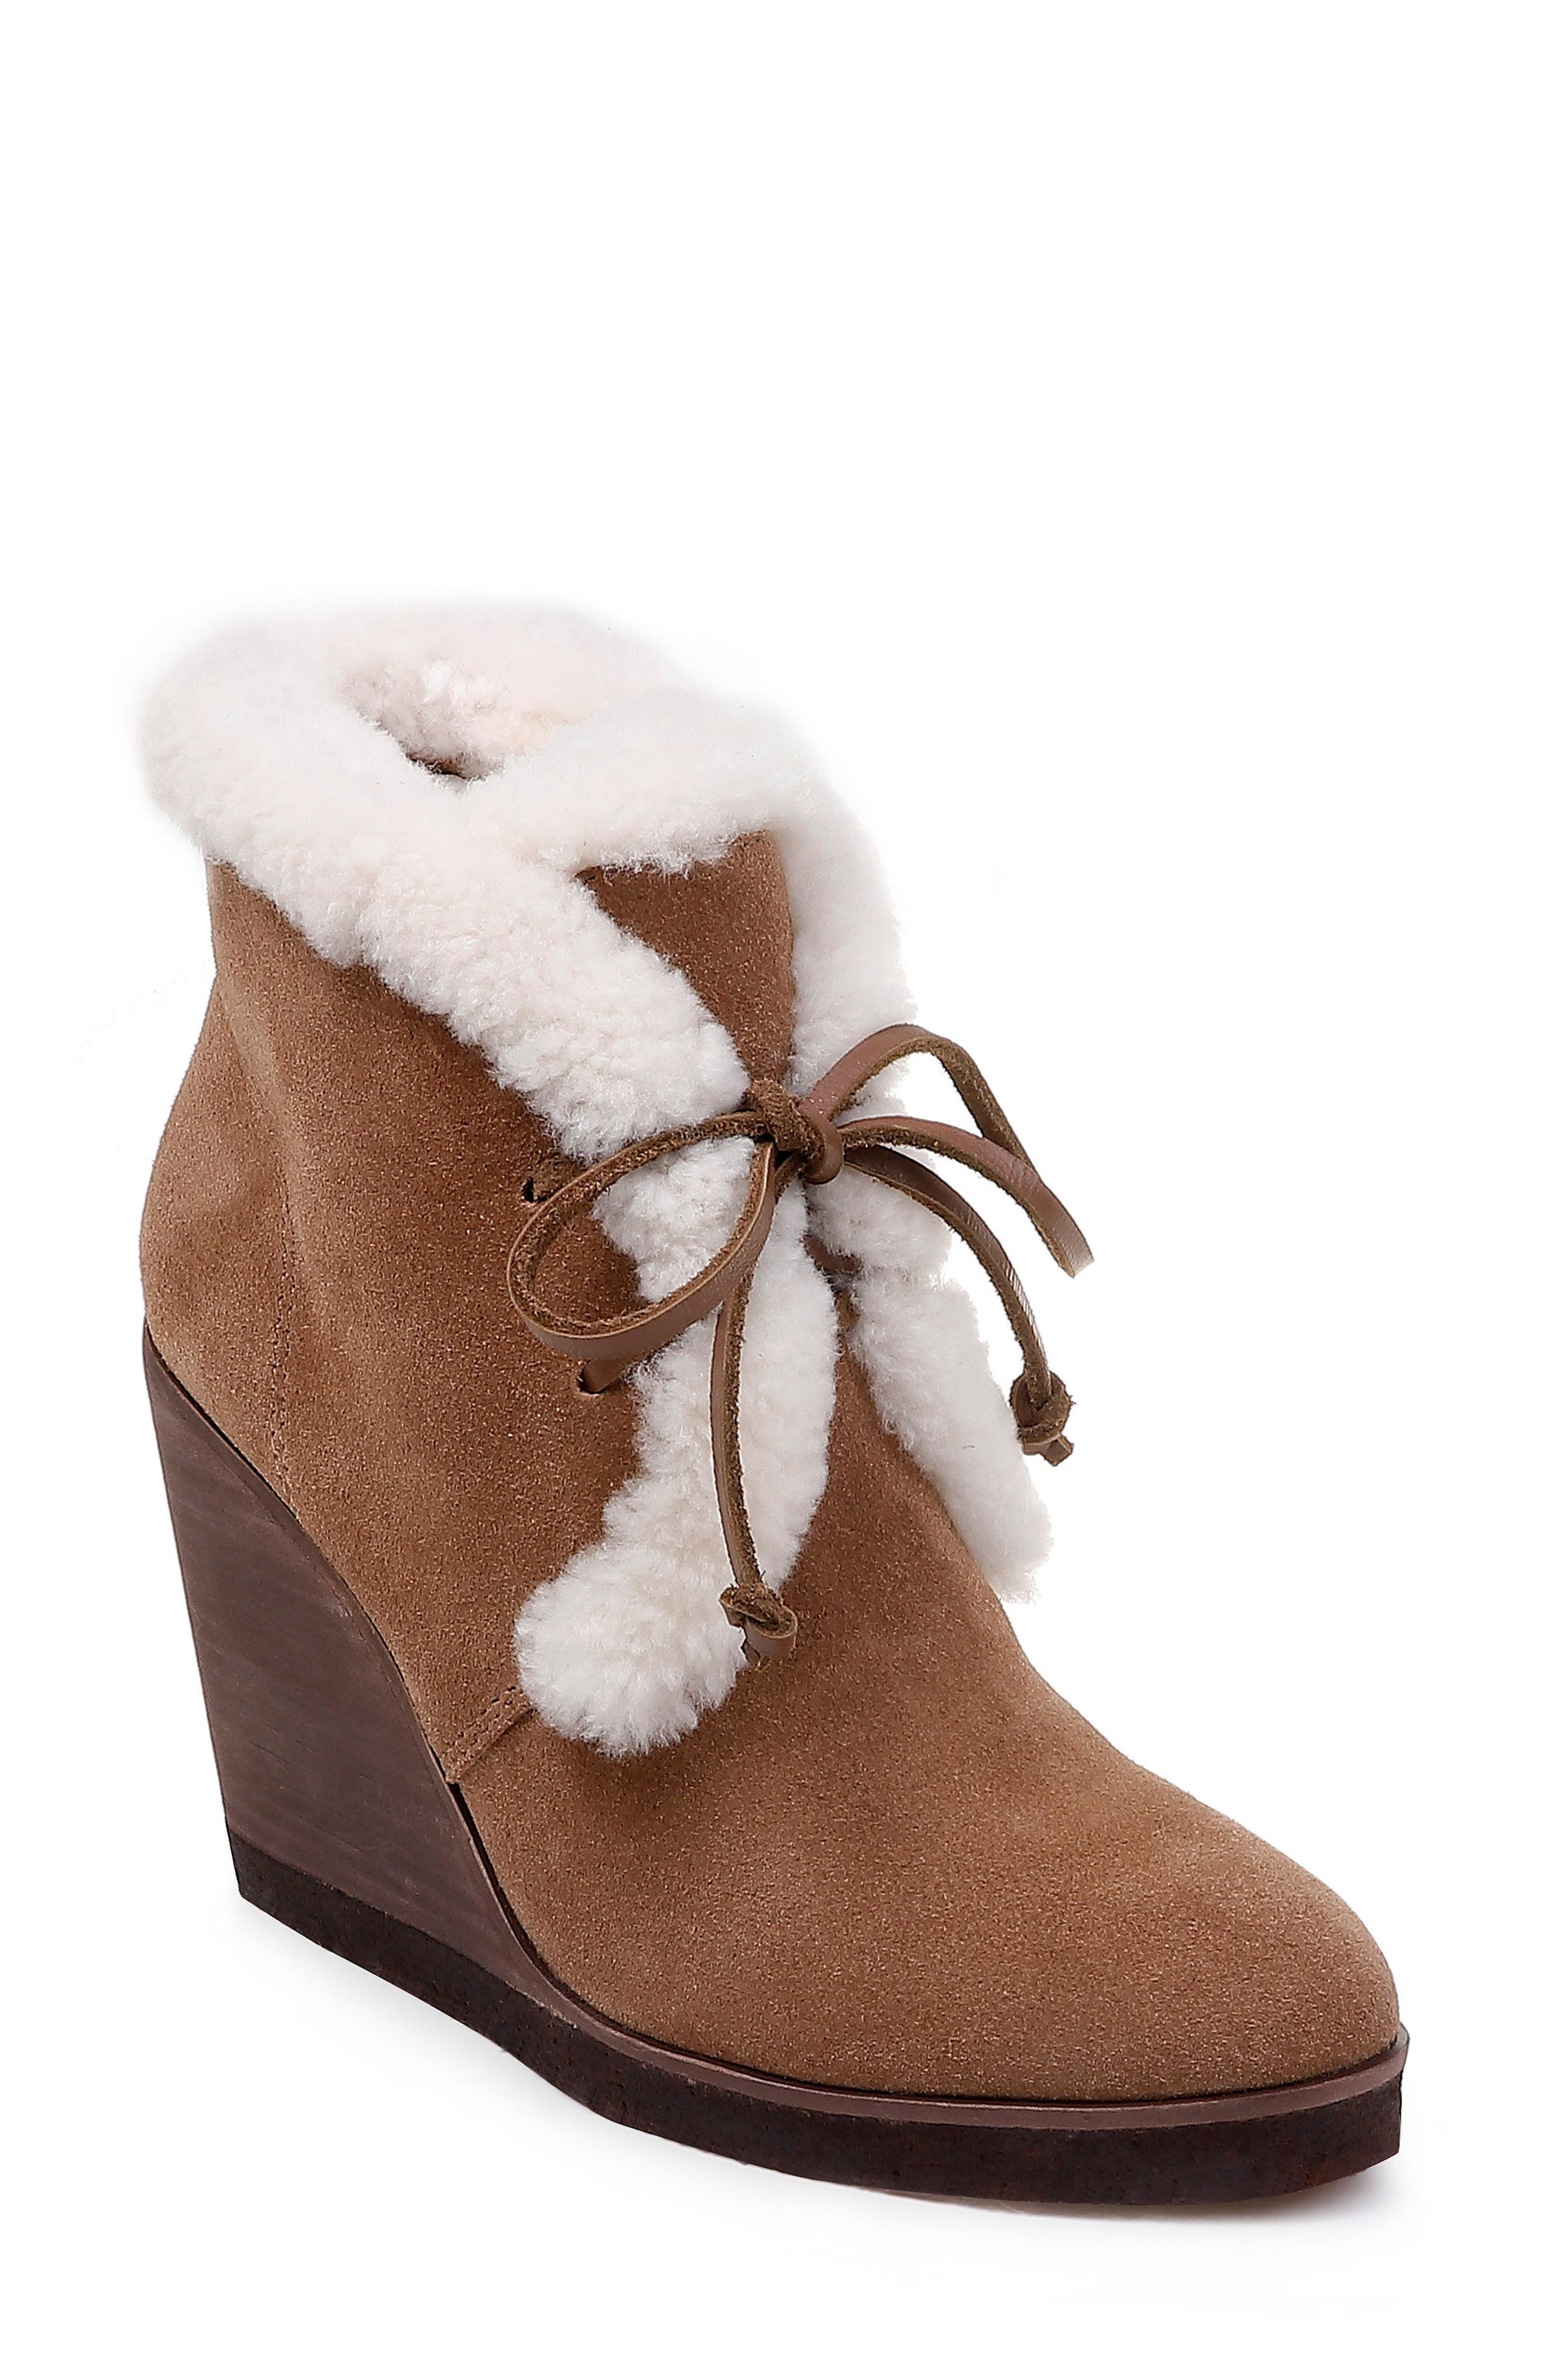 Catalina Faux-Shearling Wedge Bootie,                             Main thumbnail 1, color,                             LIGHT BROWN SUEDE